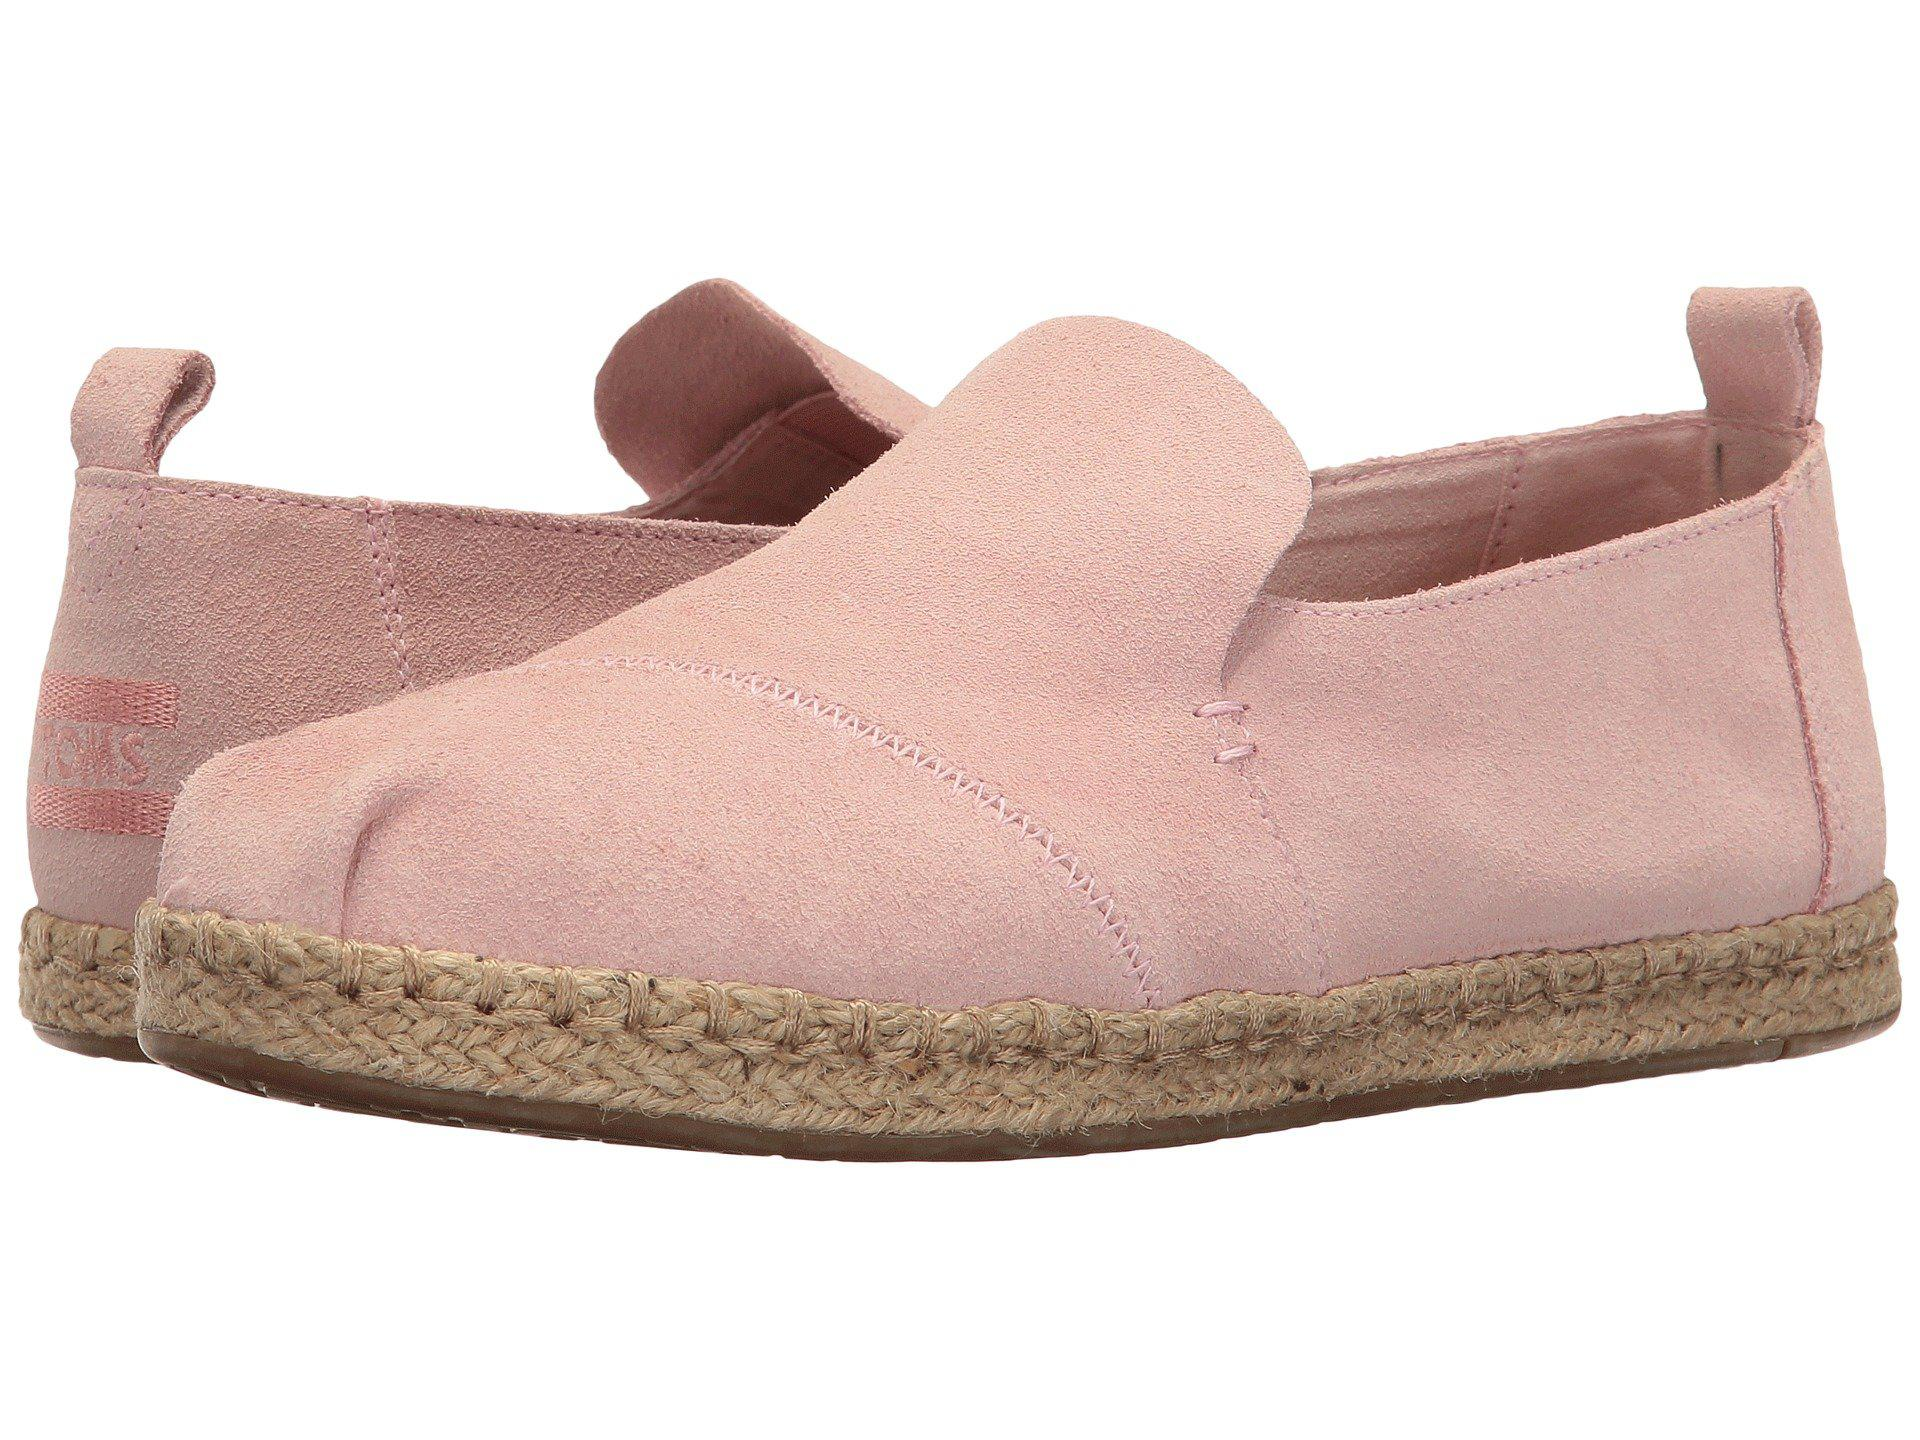 6b640d83709 Lyst - TOMS Deconstructed Alpargata in Pink - Save 29%